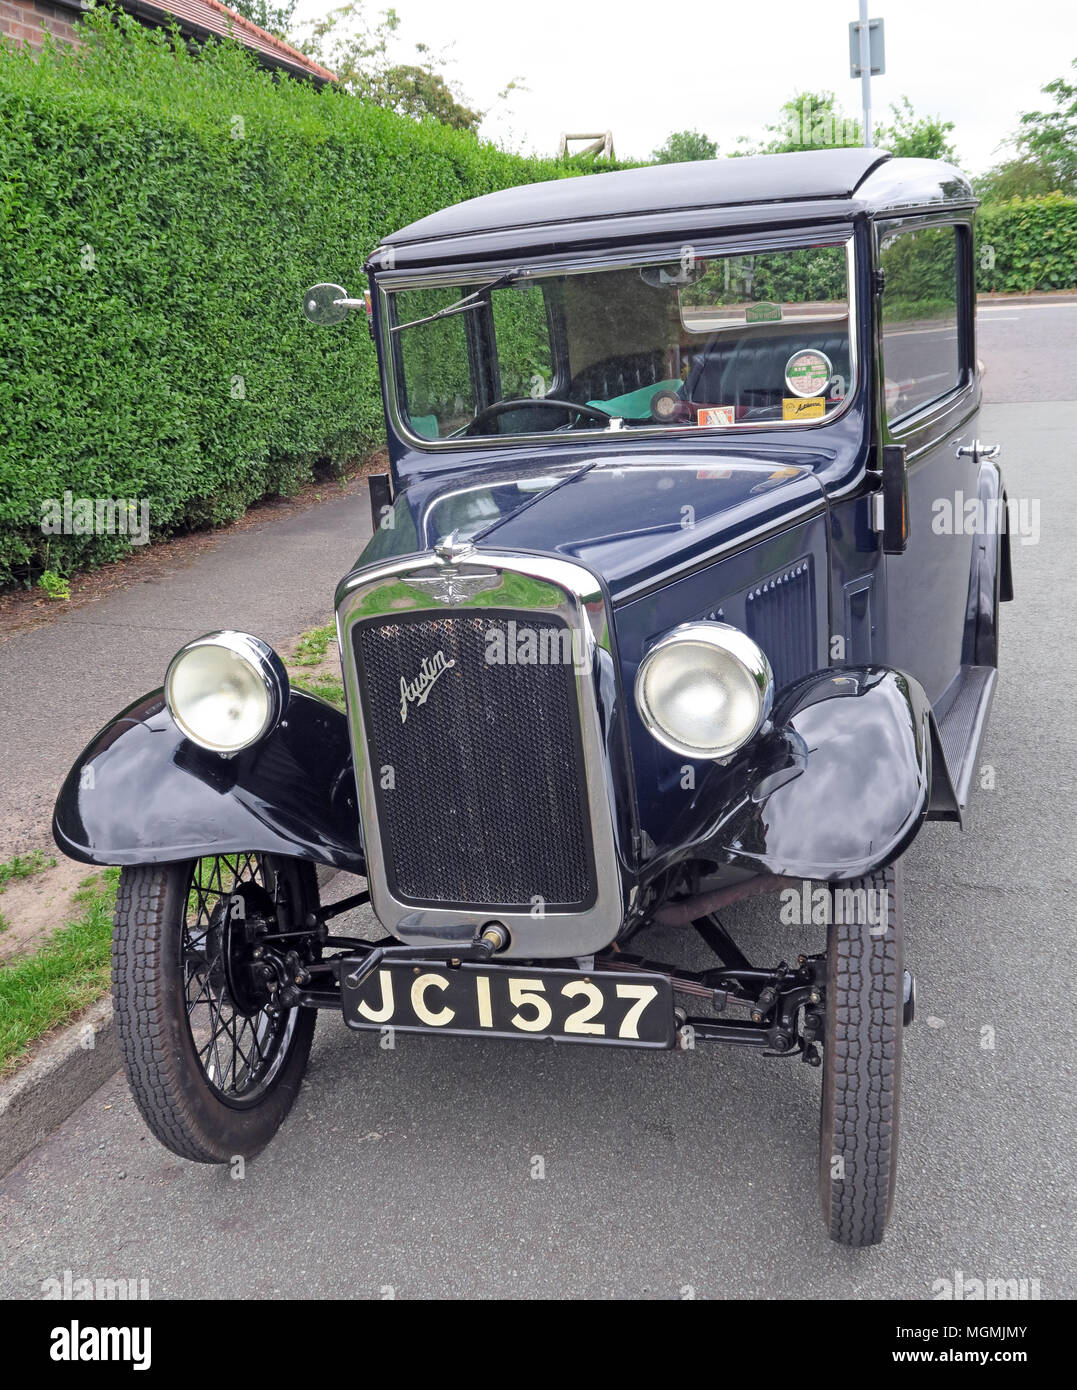 GoTonySmith,automobile,vehicle,classic,saloon,on,the,road,parked,JC 1527,petrol,engine,1922,Economy Car,Economy,history,historic,Great,British,UK,GB,United Kingdom,manufacturing,made,produced,Rosengarts,2 door,Great Britain,Sir Herbert Austin,Herbert Austin,Small car,smaller car,Horsepower tax,Austin factory,Longbridge,factory,carplant,car plant,plant,Jeremy Corbyn